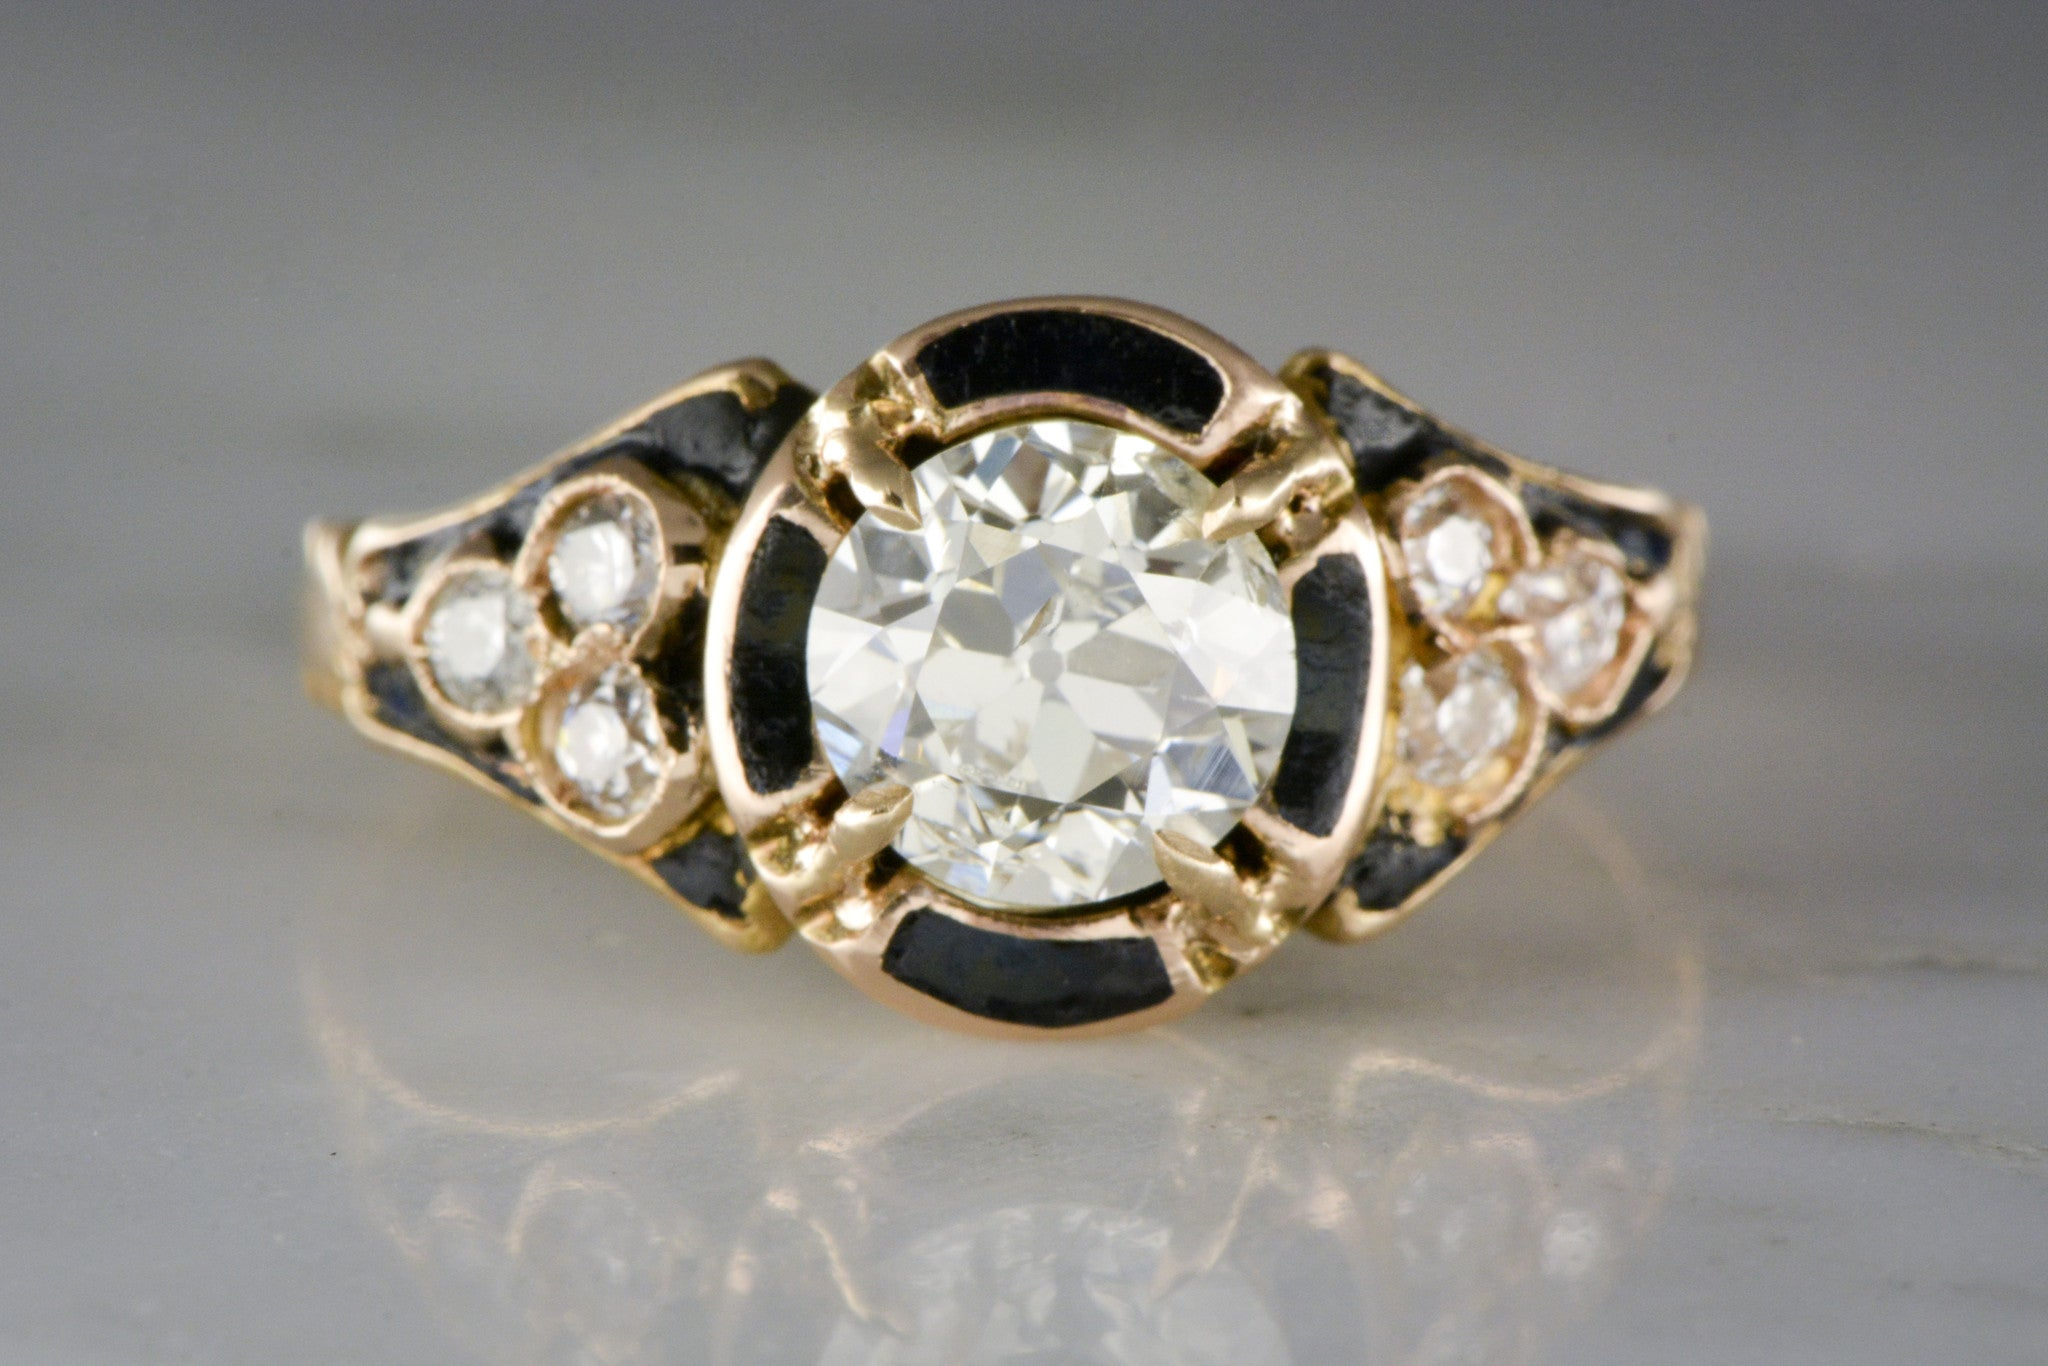 its sold rings worth for worthy auctioned round most cut ct what ext extravagant blog ring right diamond top hand at